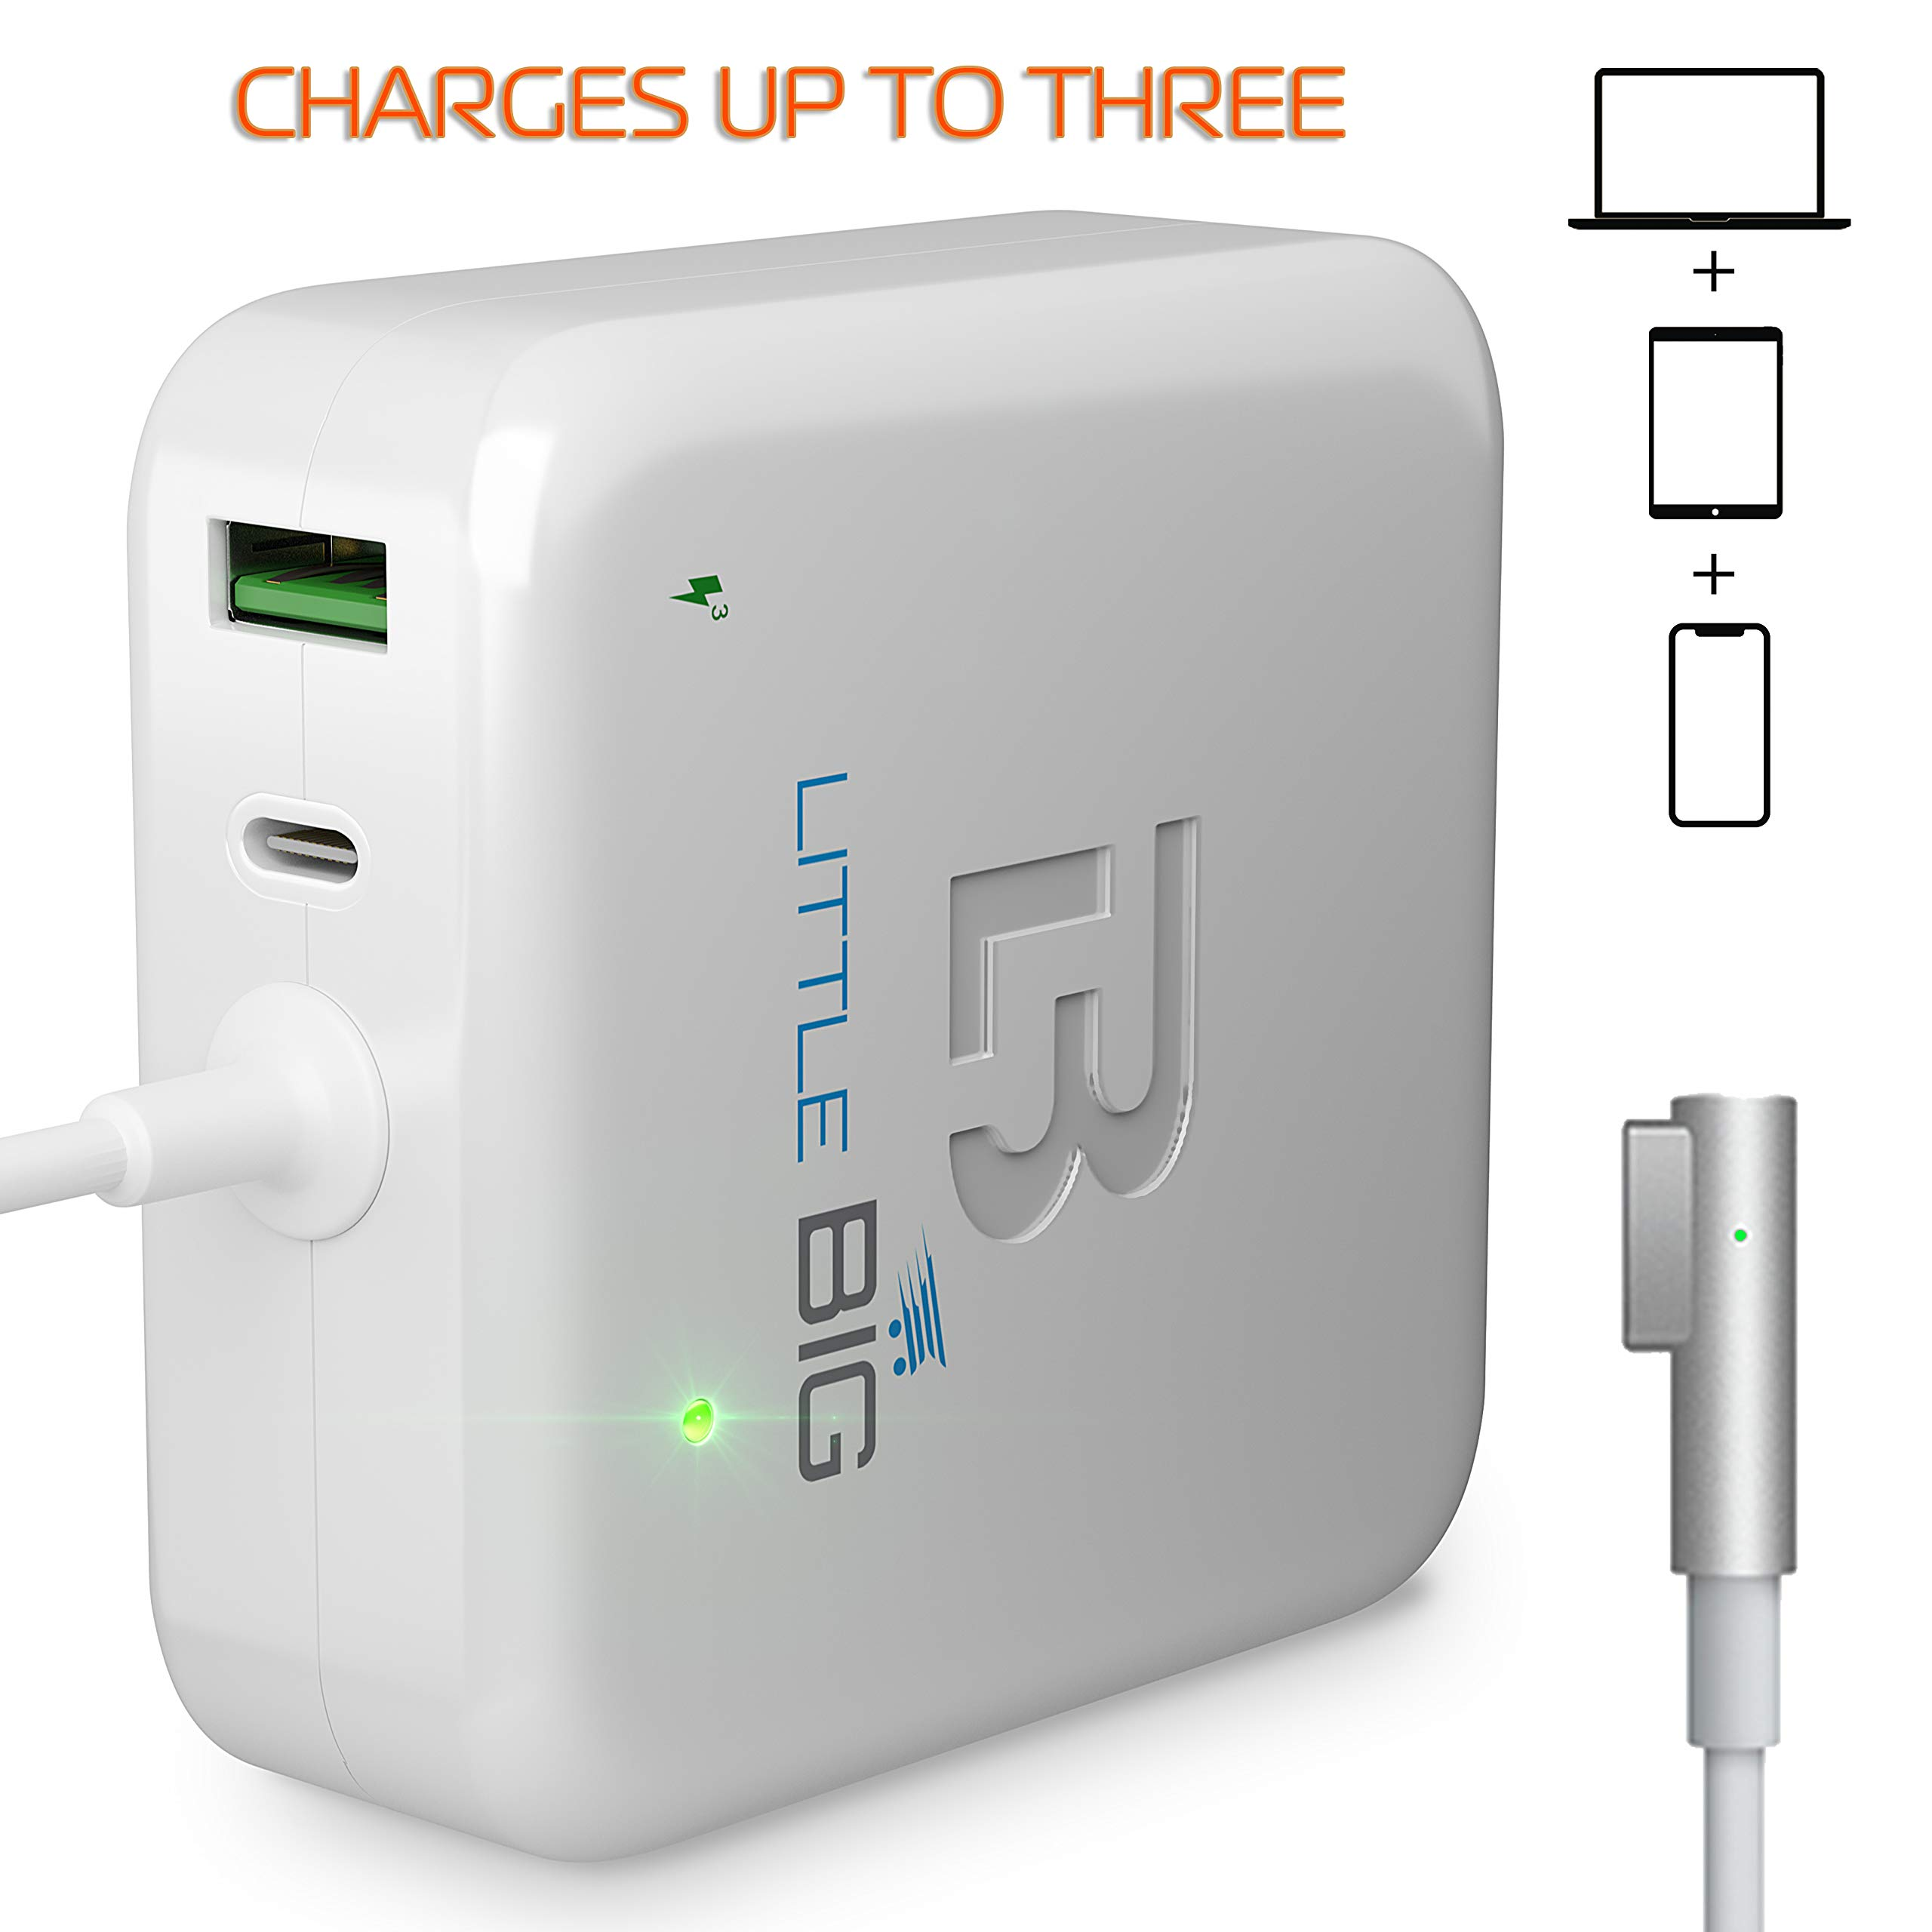 MacBook Pro Charger - 60W Power Adapter Magsafe 1 L-tip Style Connector Replacement MacBook Pro Charger for Apple MacBook Pro Retina 11 inch/13 inch White by LB Little Big